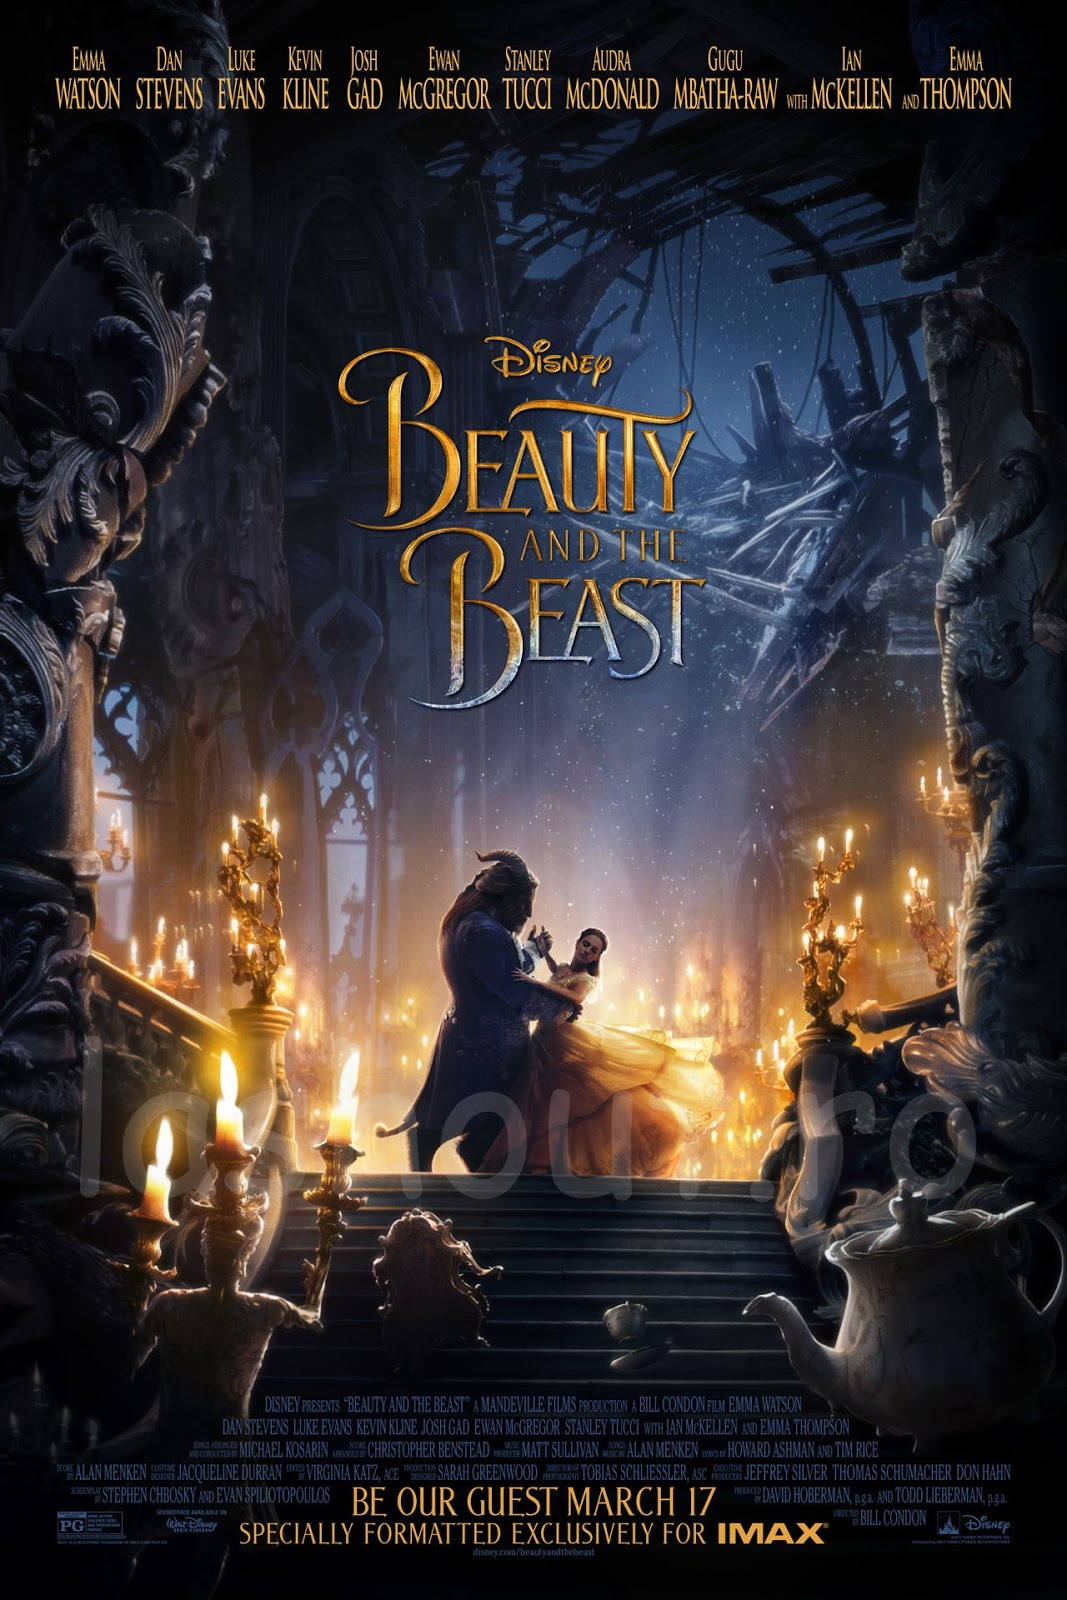 Watch Here The Movie Beauty And The Beast Full Hd Online Free